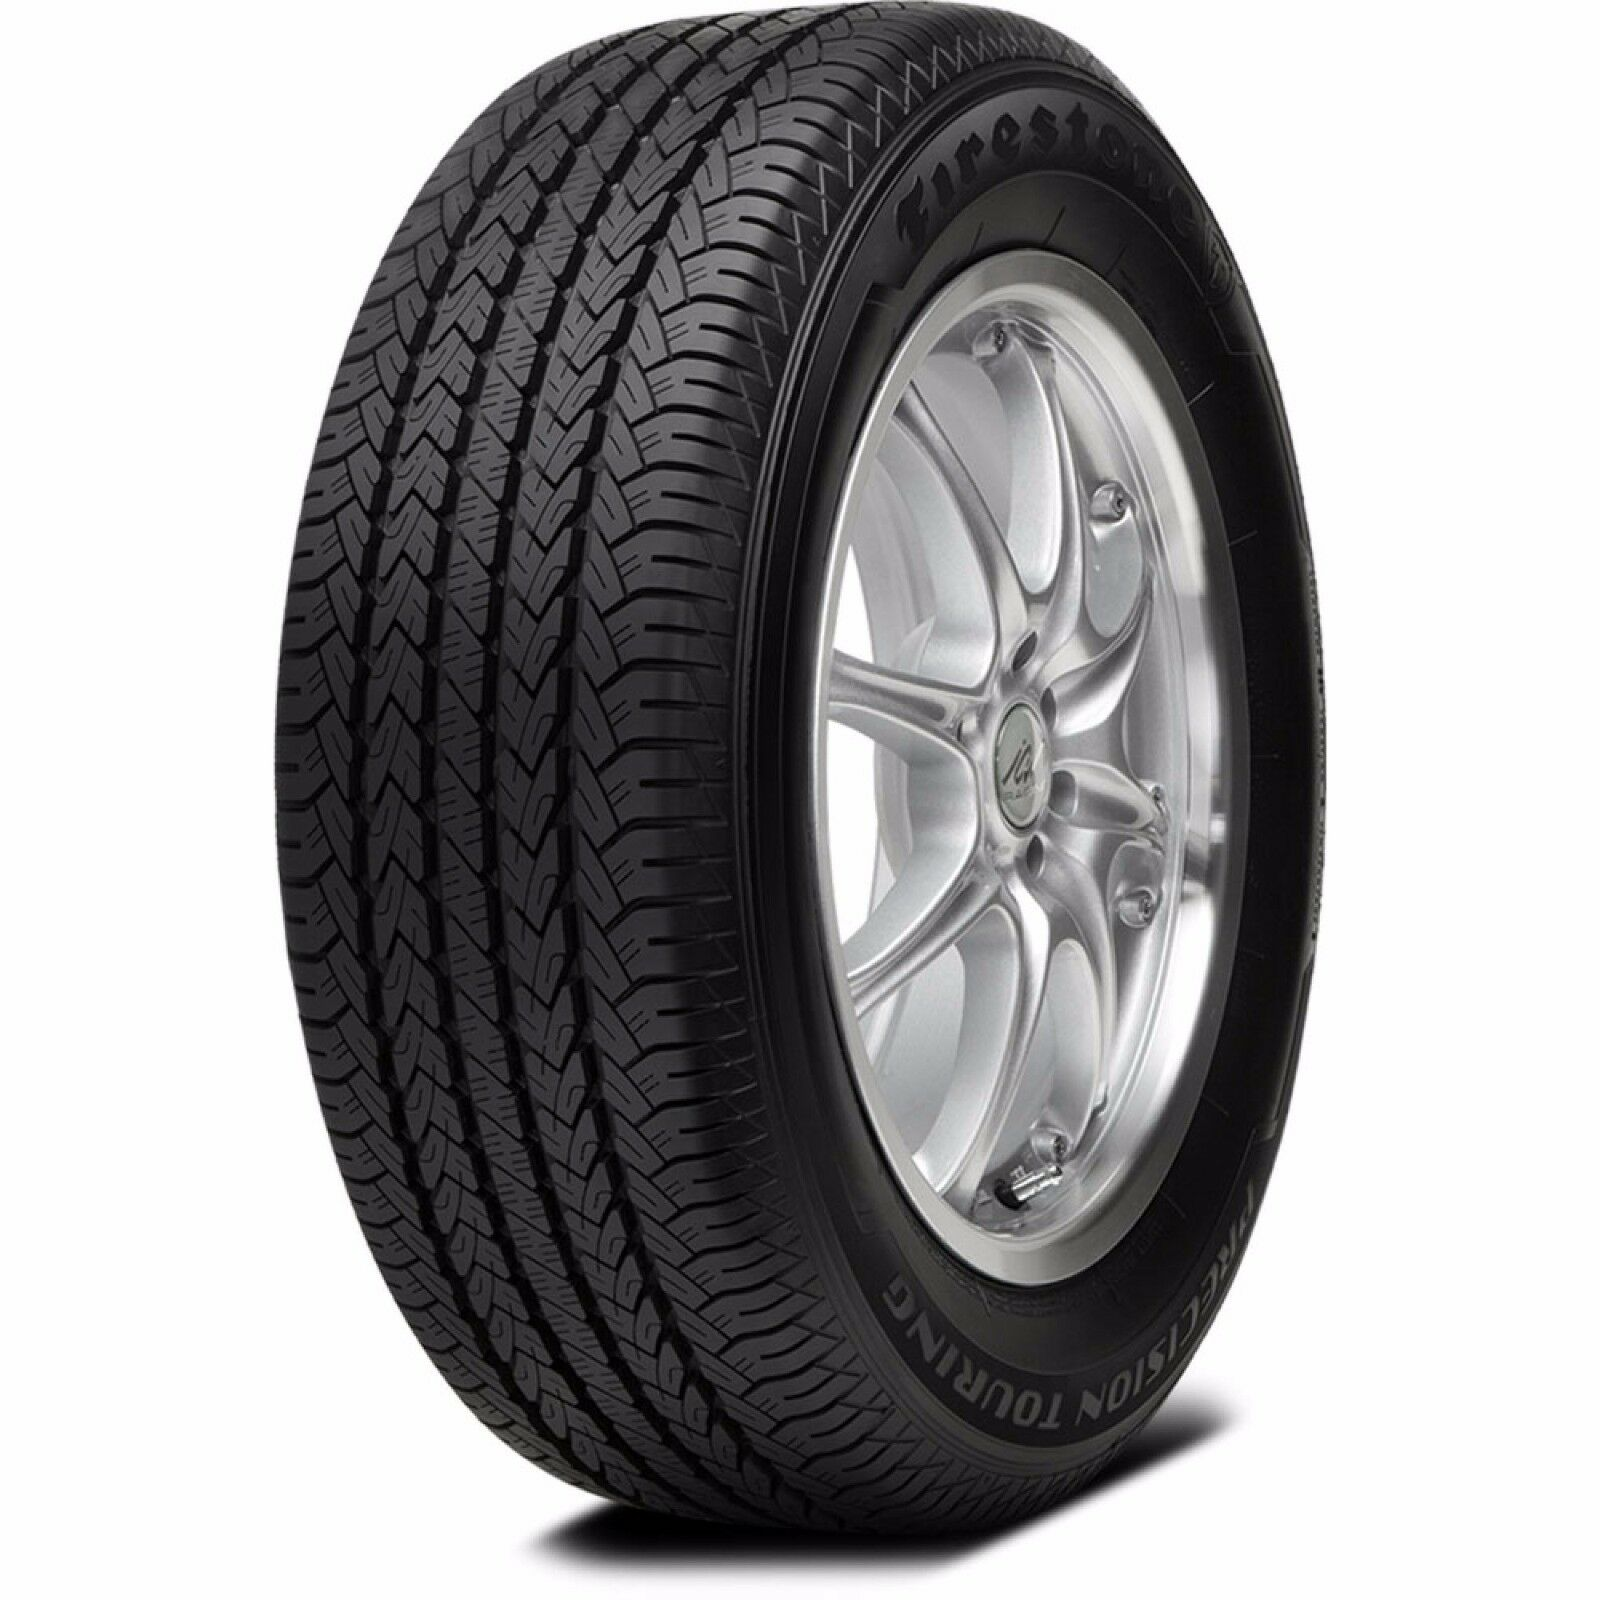 235 65r16 Firestone Precision Touring Tires 103 T Set of 2